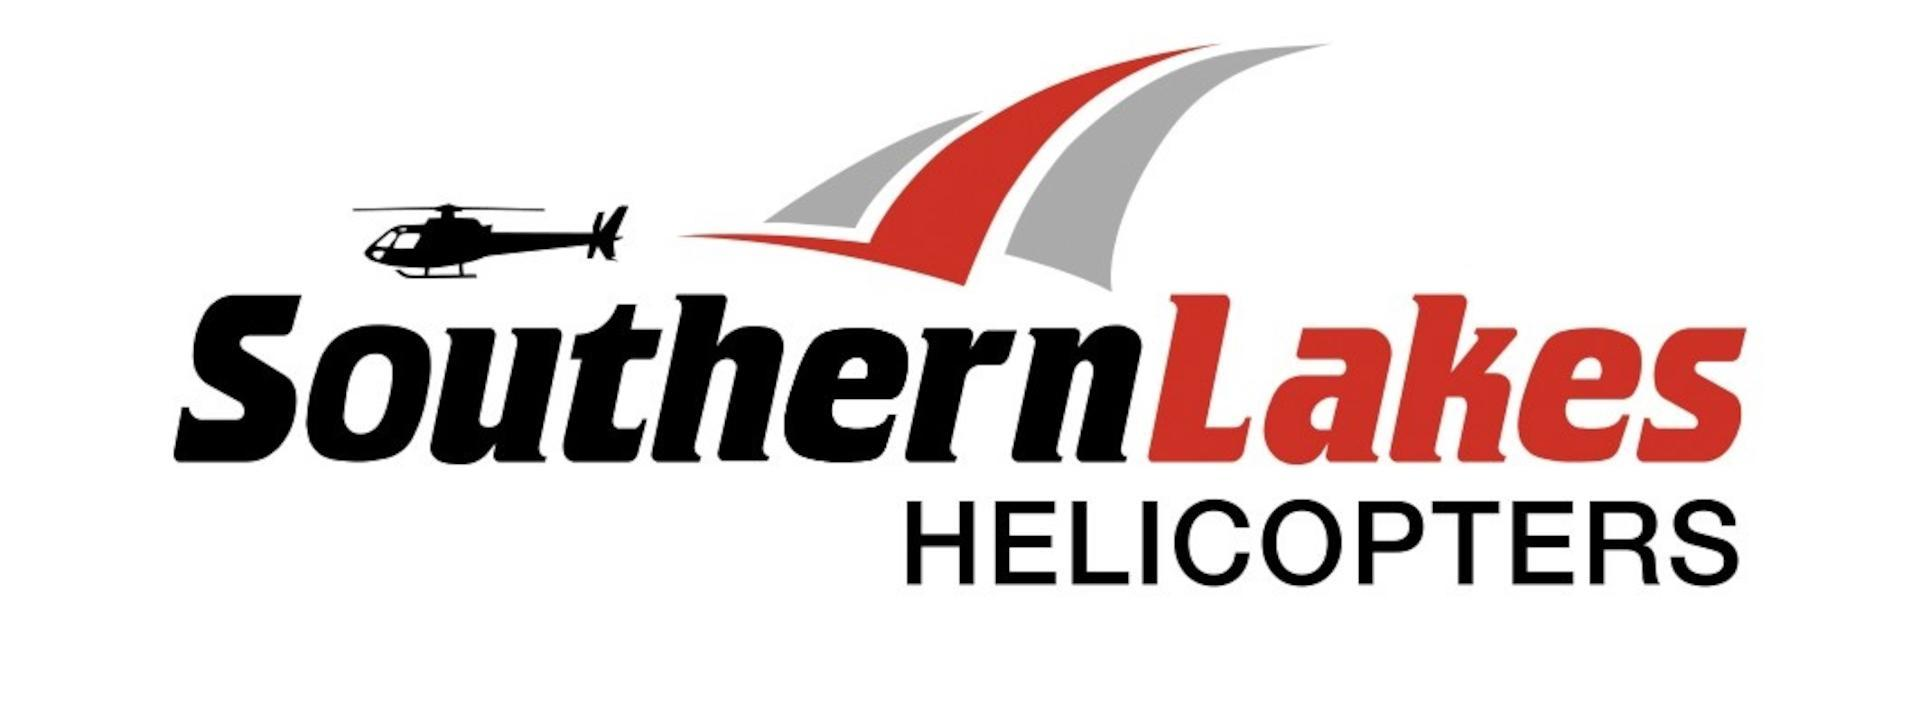 Logo: Southern Lakes Helicopters Ltd